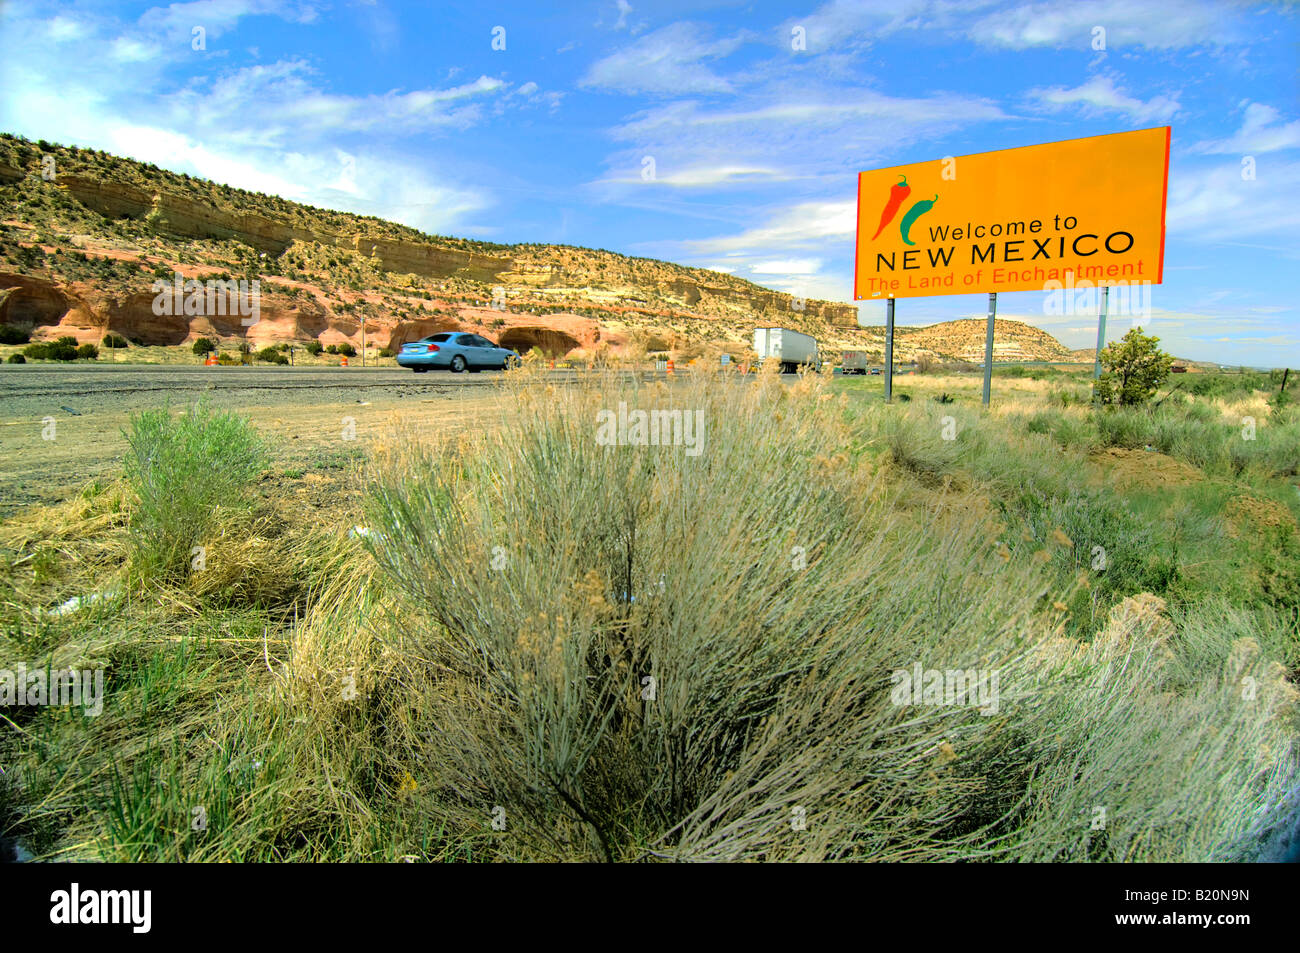 Welcome to New Mexico state sign - Stock Image